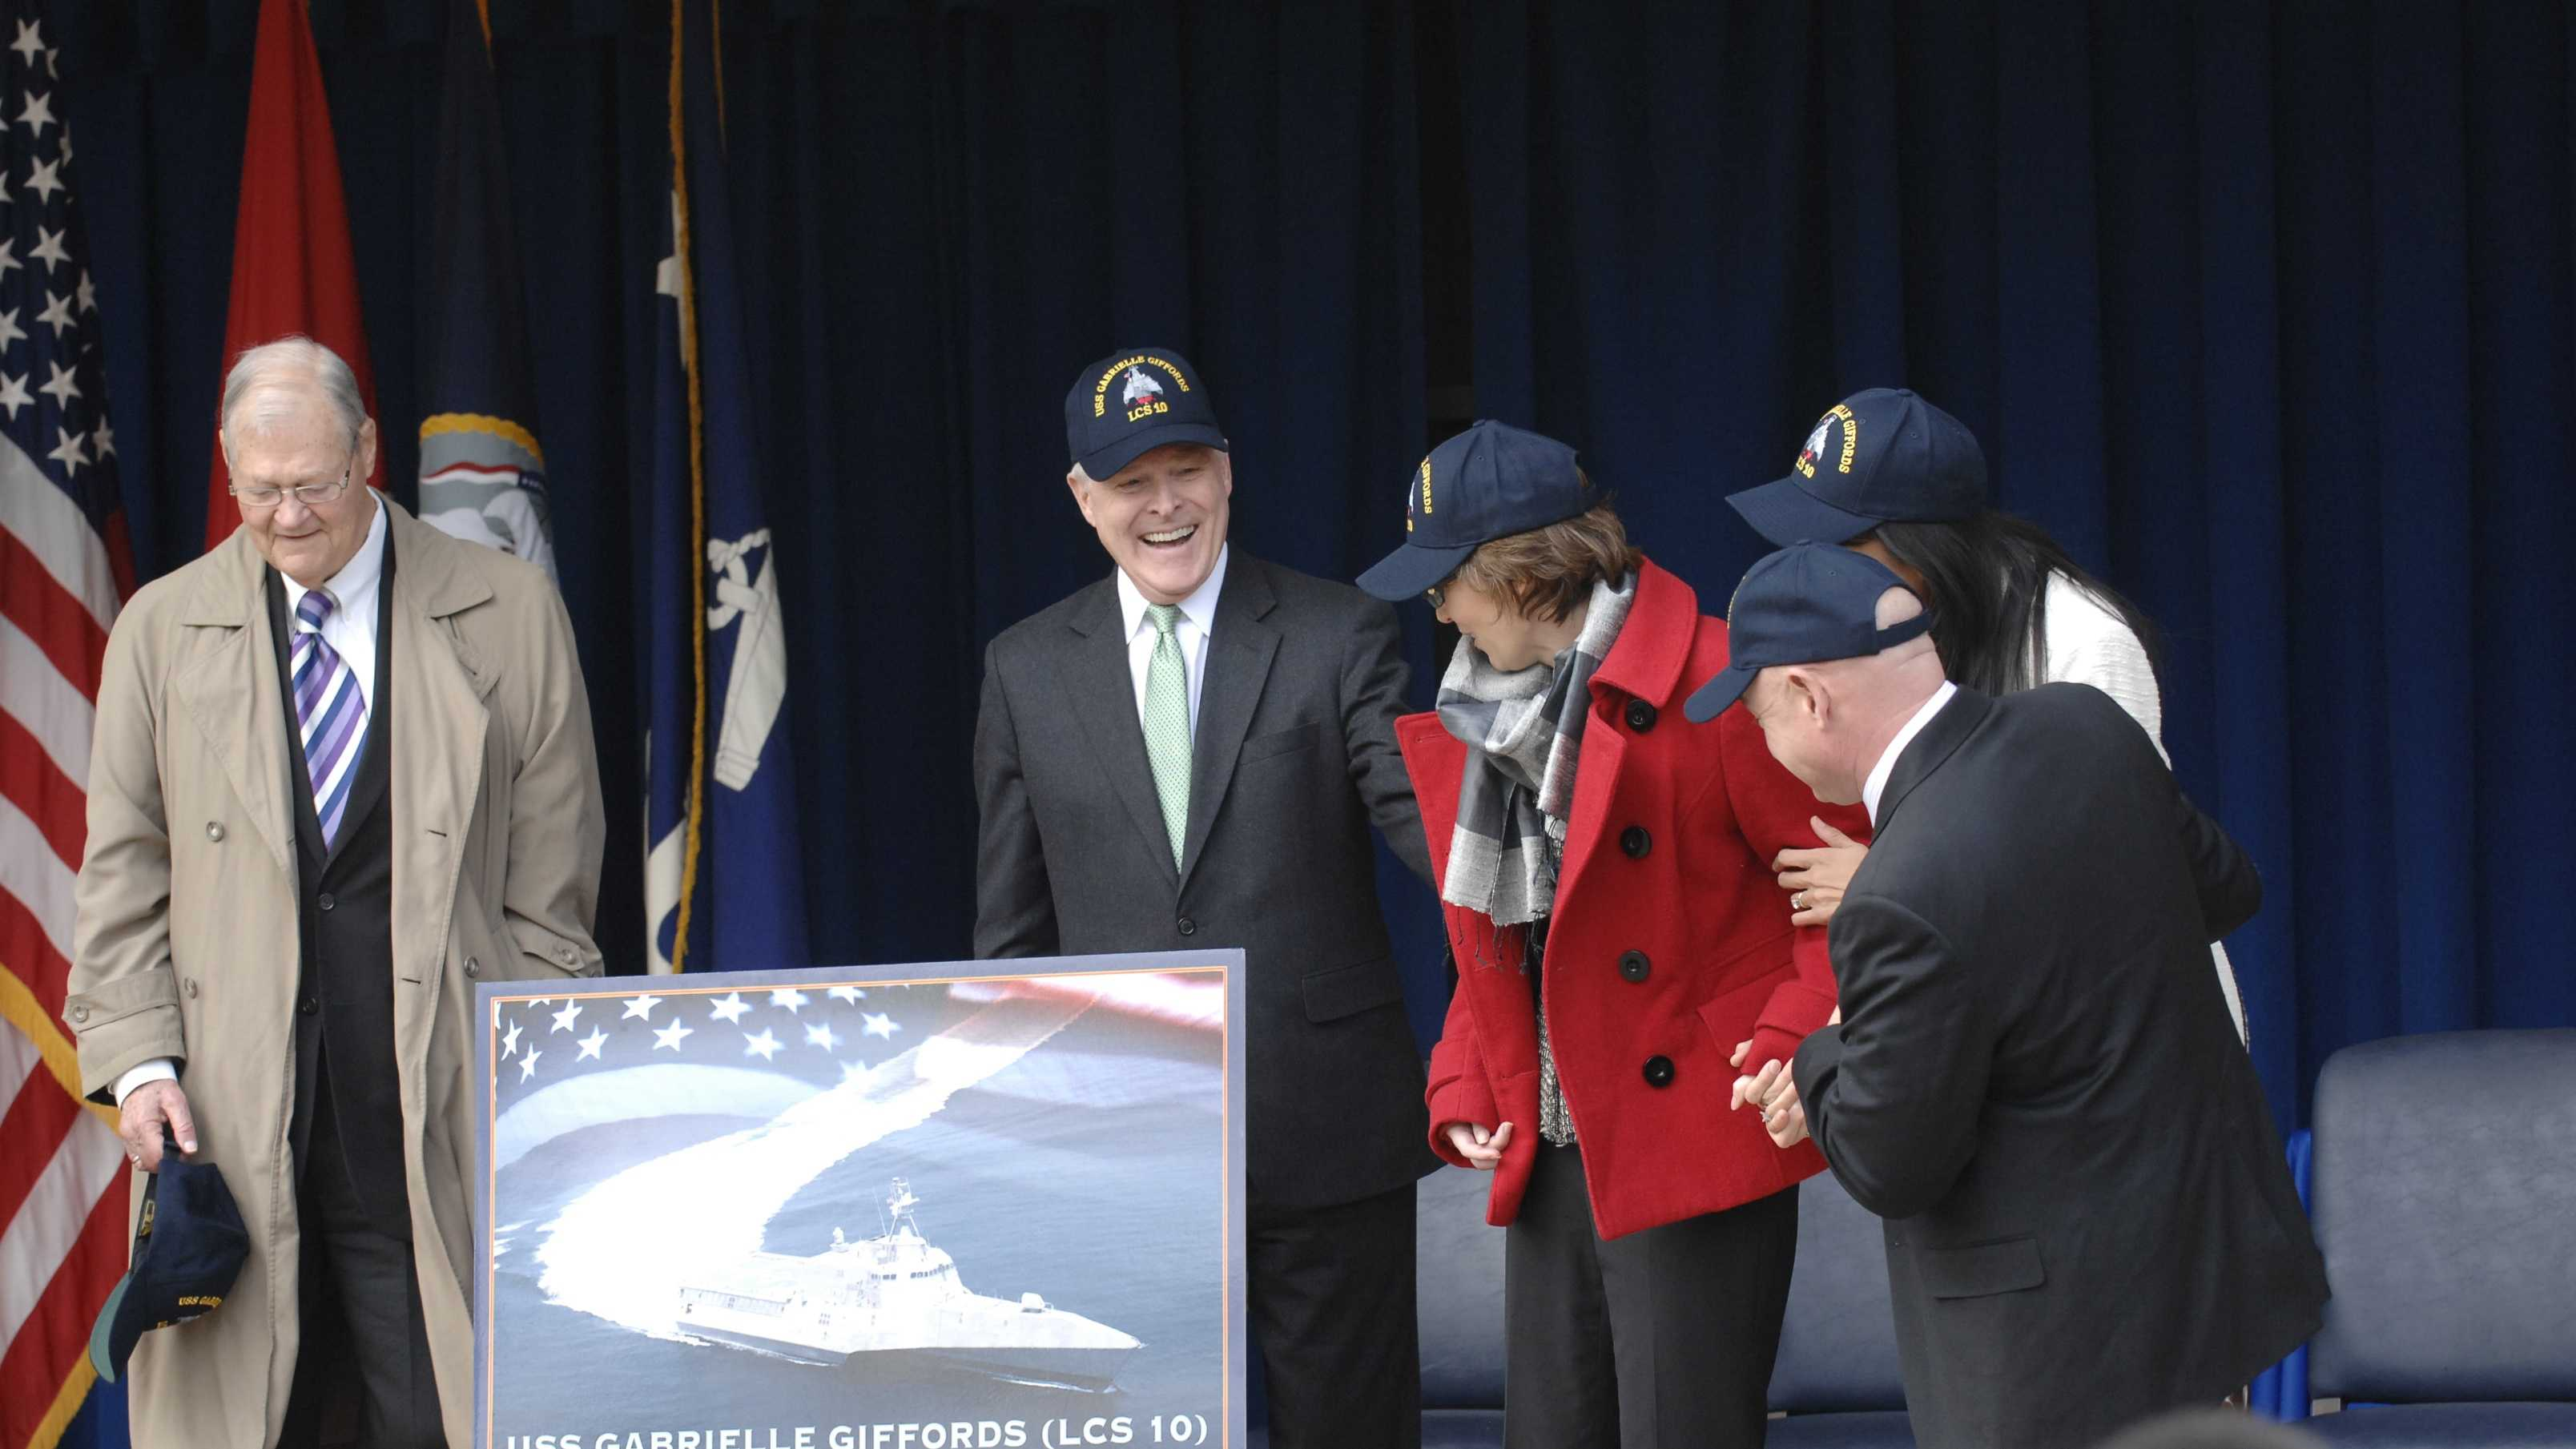 Former U.S. Rep. Gabrielle Giffords, of Arizona, center-right, admires a picture depicting the USS Gabrielle Giffords, the Navy's fifth Independence variant littoral combat ship, which Navy Secretary Ray Mabus, center, unveiled during an event at the Pentagon, Feb. 10, 2012. Giffords' husband, retired Navy astronaut Mark Kelly, front-right, former Missouri Rep. Ike Skelton, far left, and Roxanna Green, mother of Christina-Taylor Green, who was killed during the same event in which Giffords was shot, also attended the ceremony. DOD photo by Army Sgt. 1st Class Tyrone C. Marshall Jr.